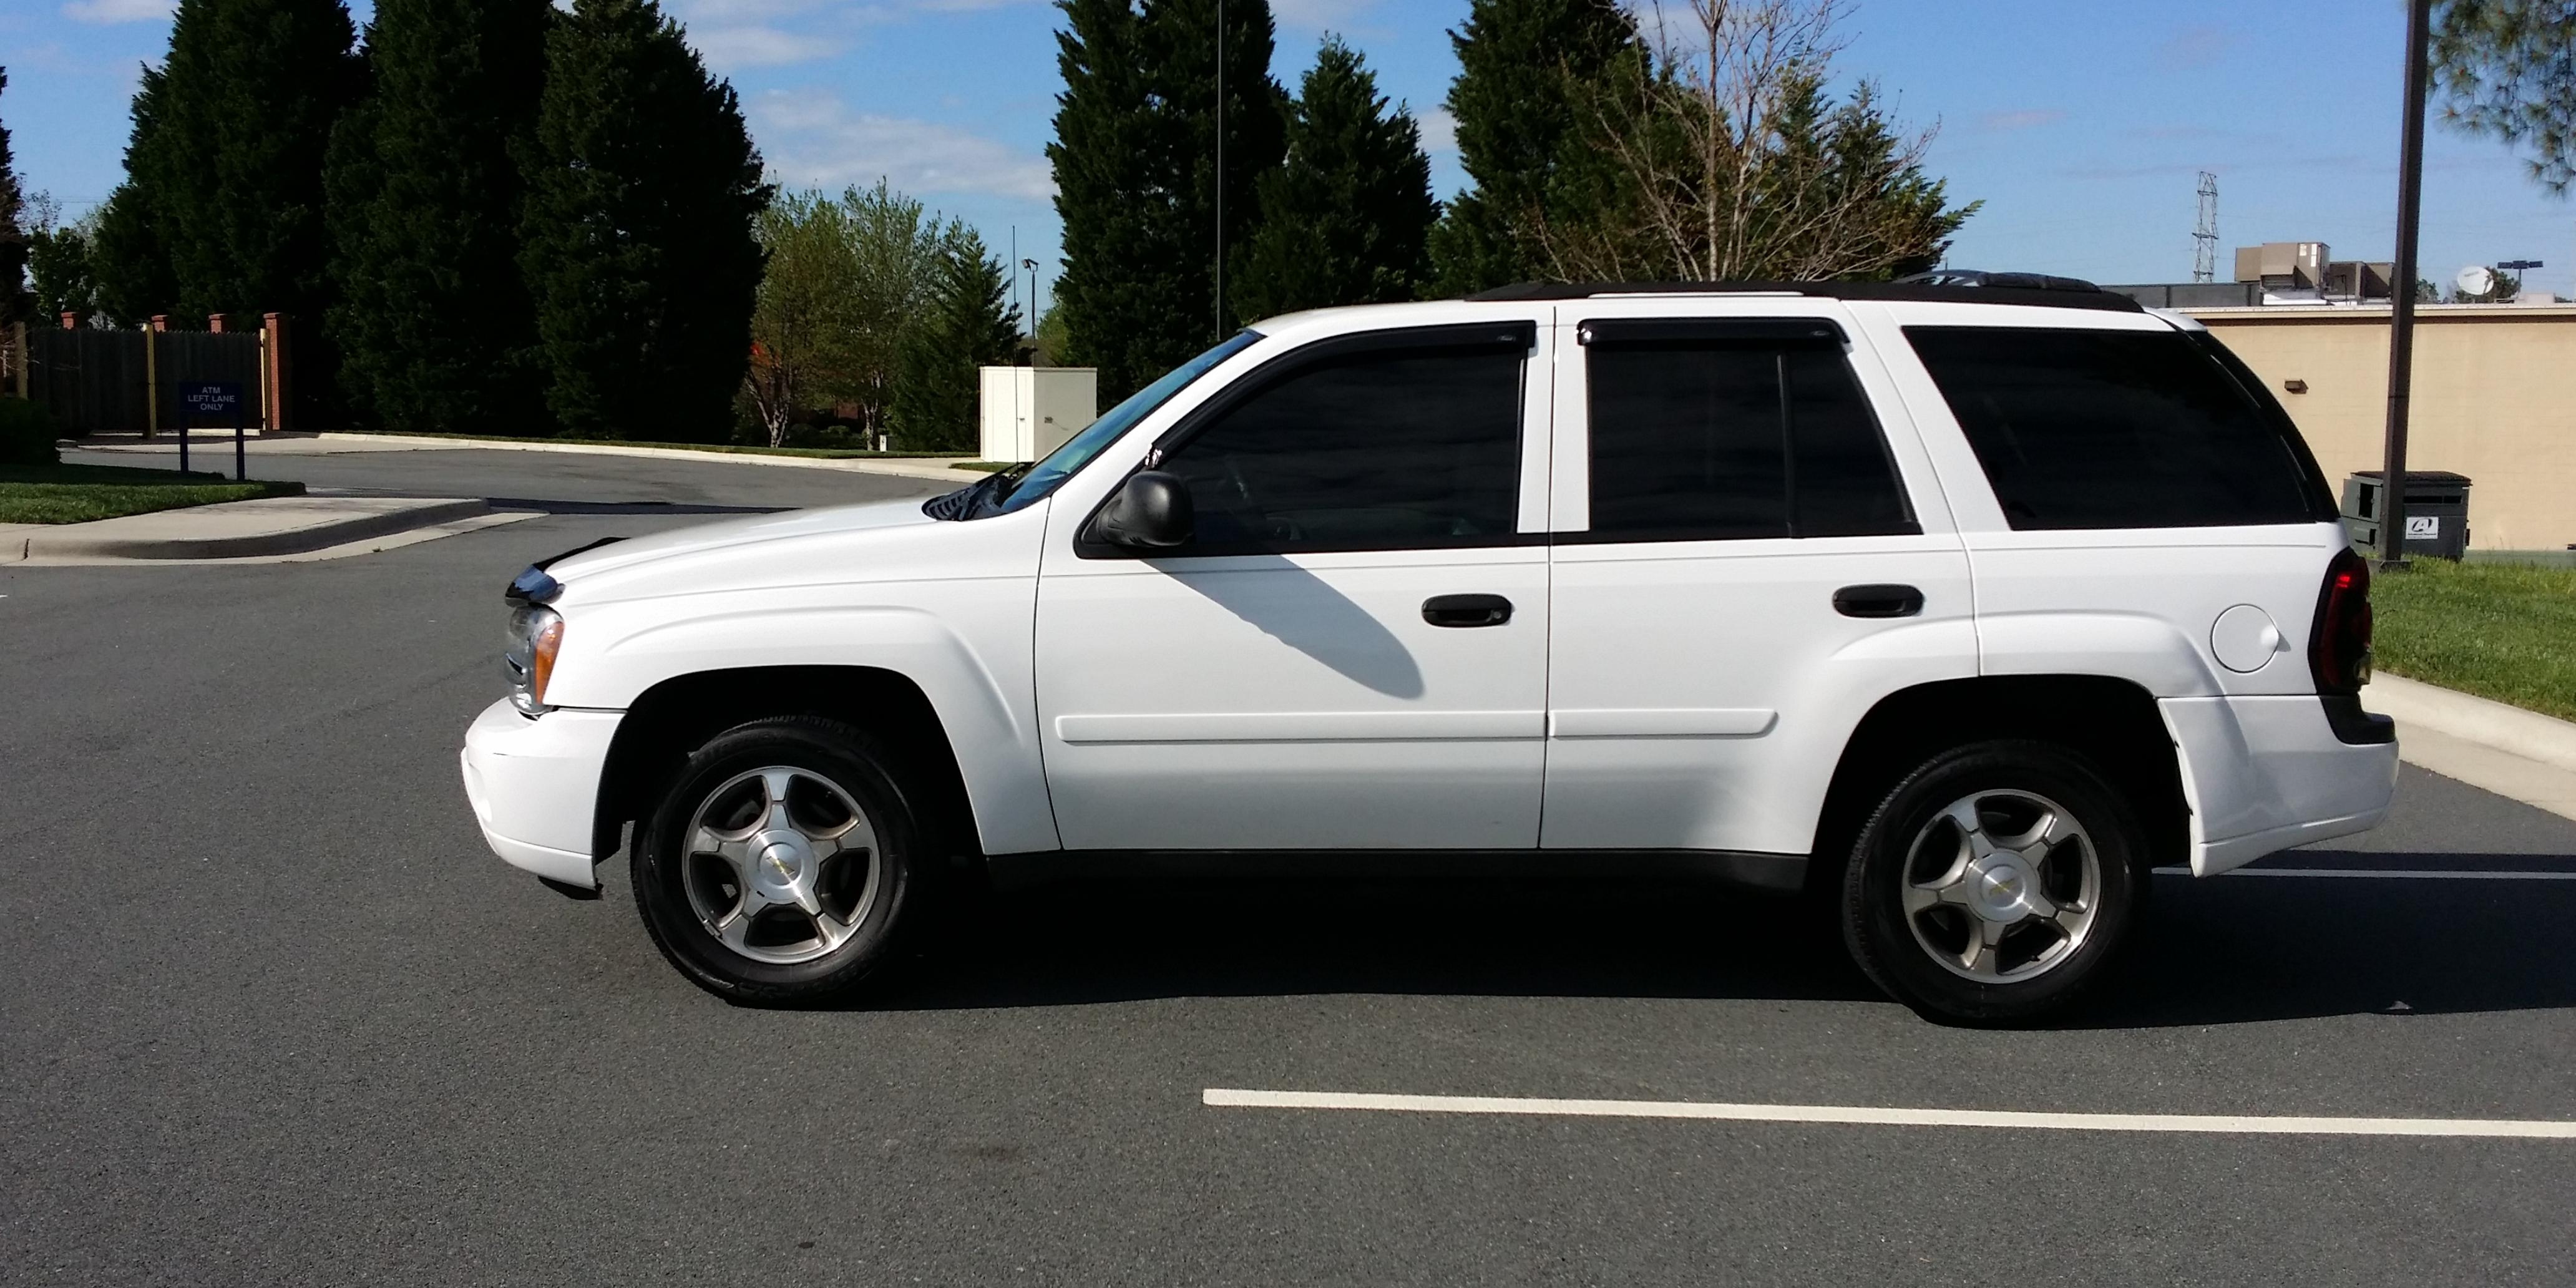 lilron704's 2008 Chevrolet TrailBlazer